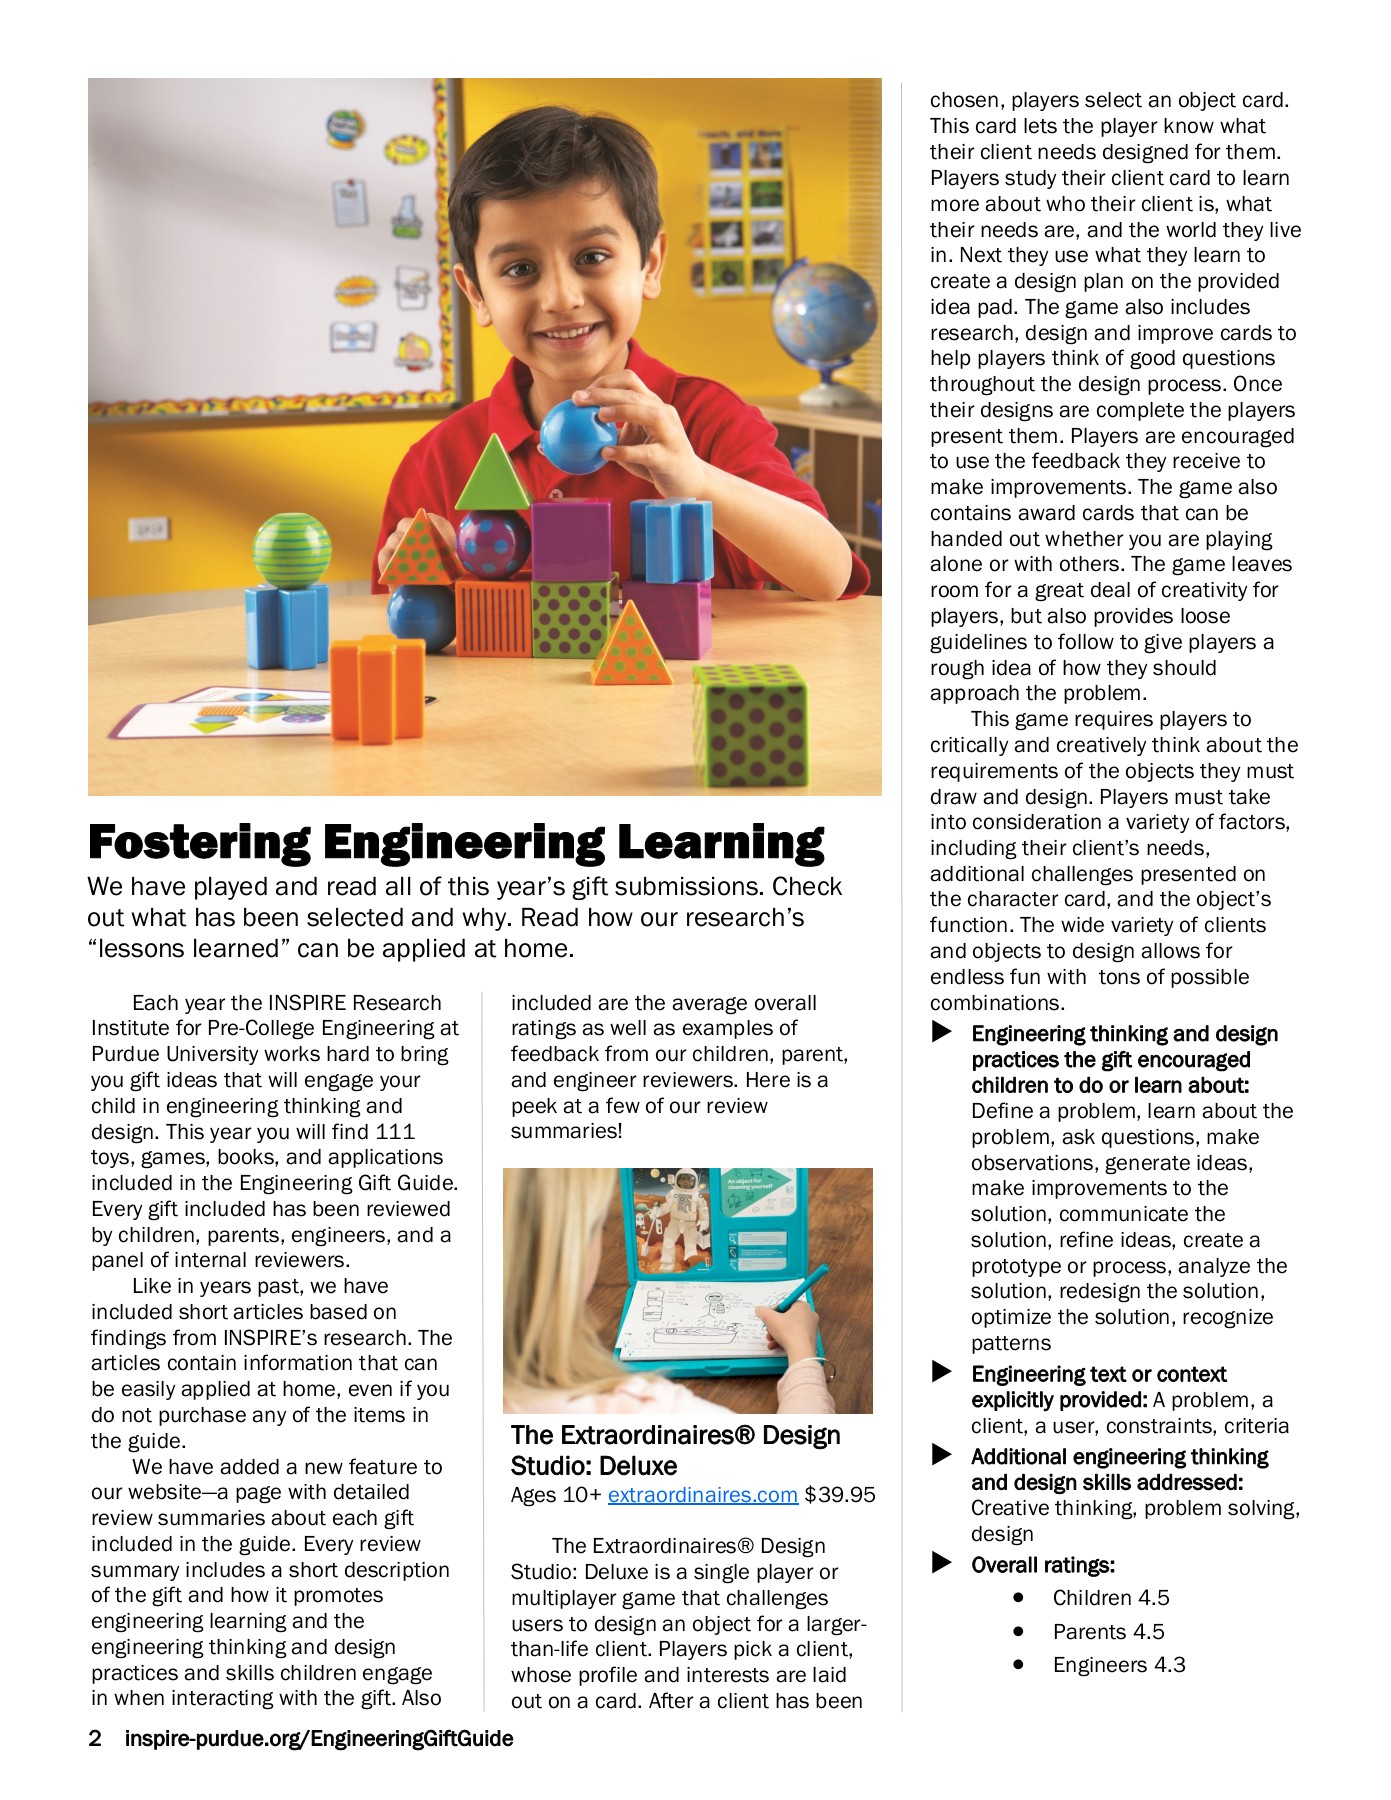 Engineering Gift Guide 2016 Pages 1 16 Text Version Anyflip Snap Circuits 300jrwondefrful Toy8 And Over Kids Toys Games Books Can Support Childrens Early Development Of Knowledge Skills Related To As Well Science Mathematics